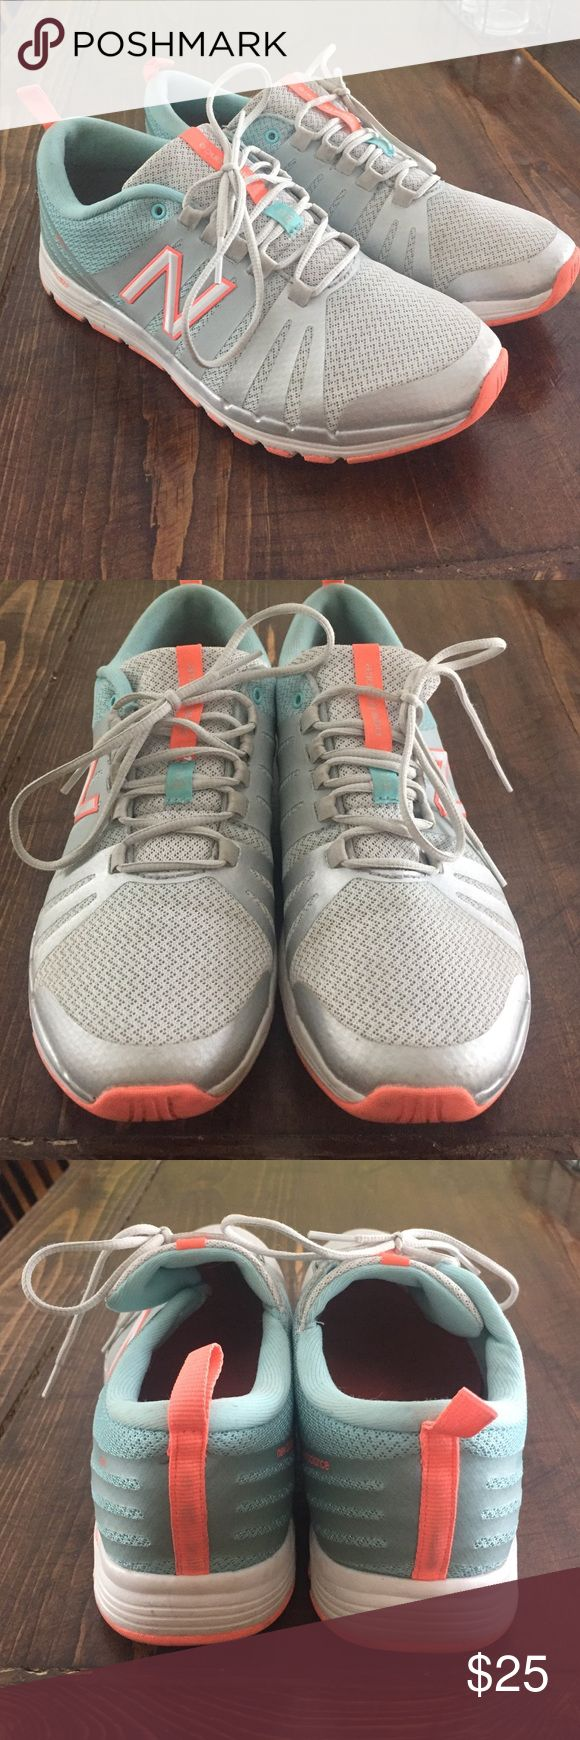 New Balance Sneakers Pre-loved New Balance sneakers. Size 8.5           811 Style. New Balance Shoes Athletic Shoes